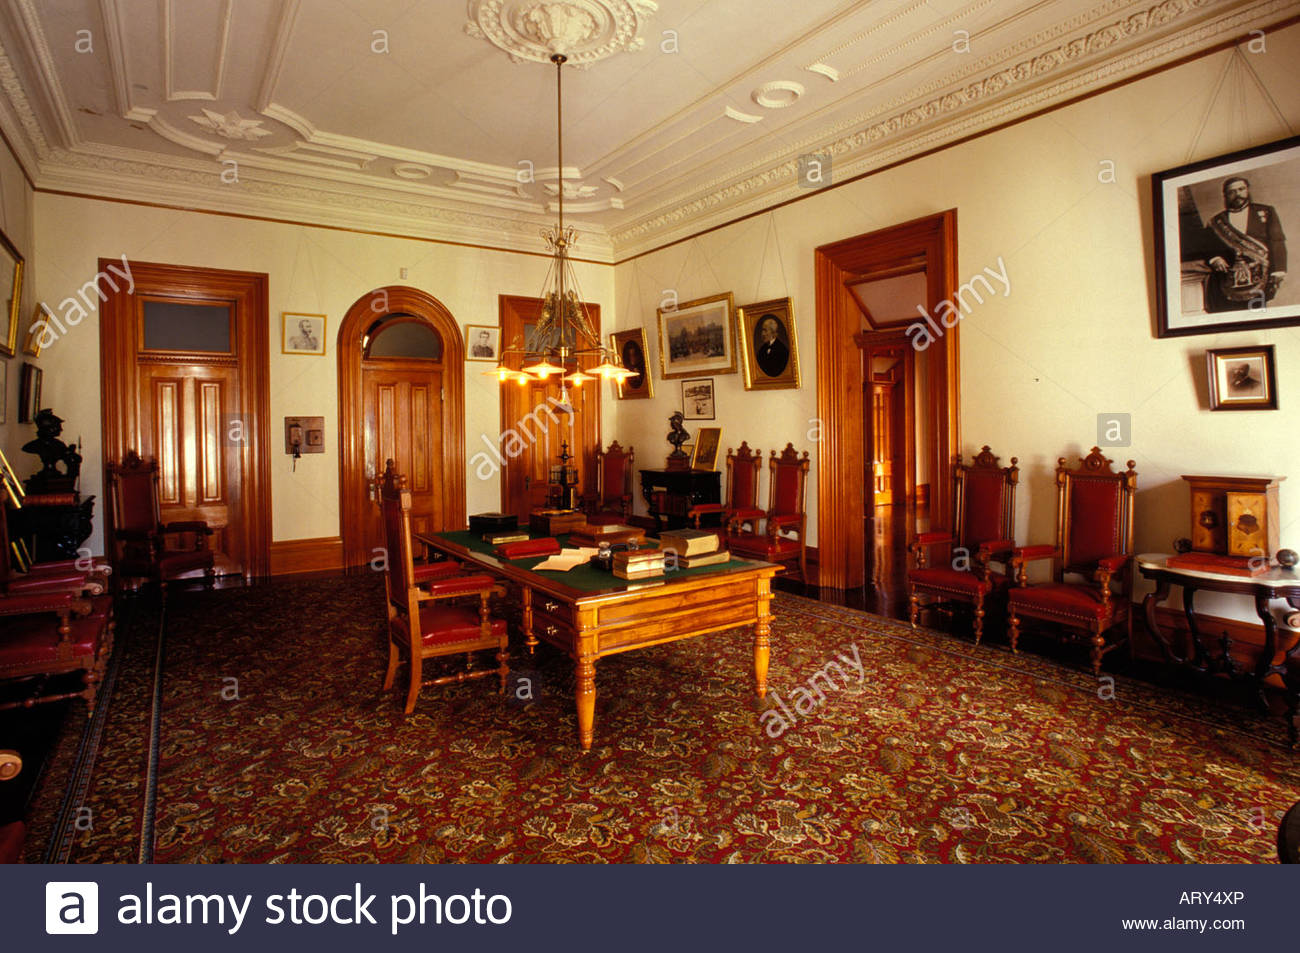 Display Of Royal Furniture And Artifacts In Iolani Palace, A 4 Story  Italian Renaissance Palace Built In 1882 Downtown Honolulu